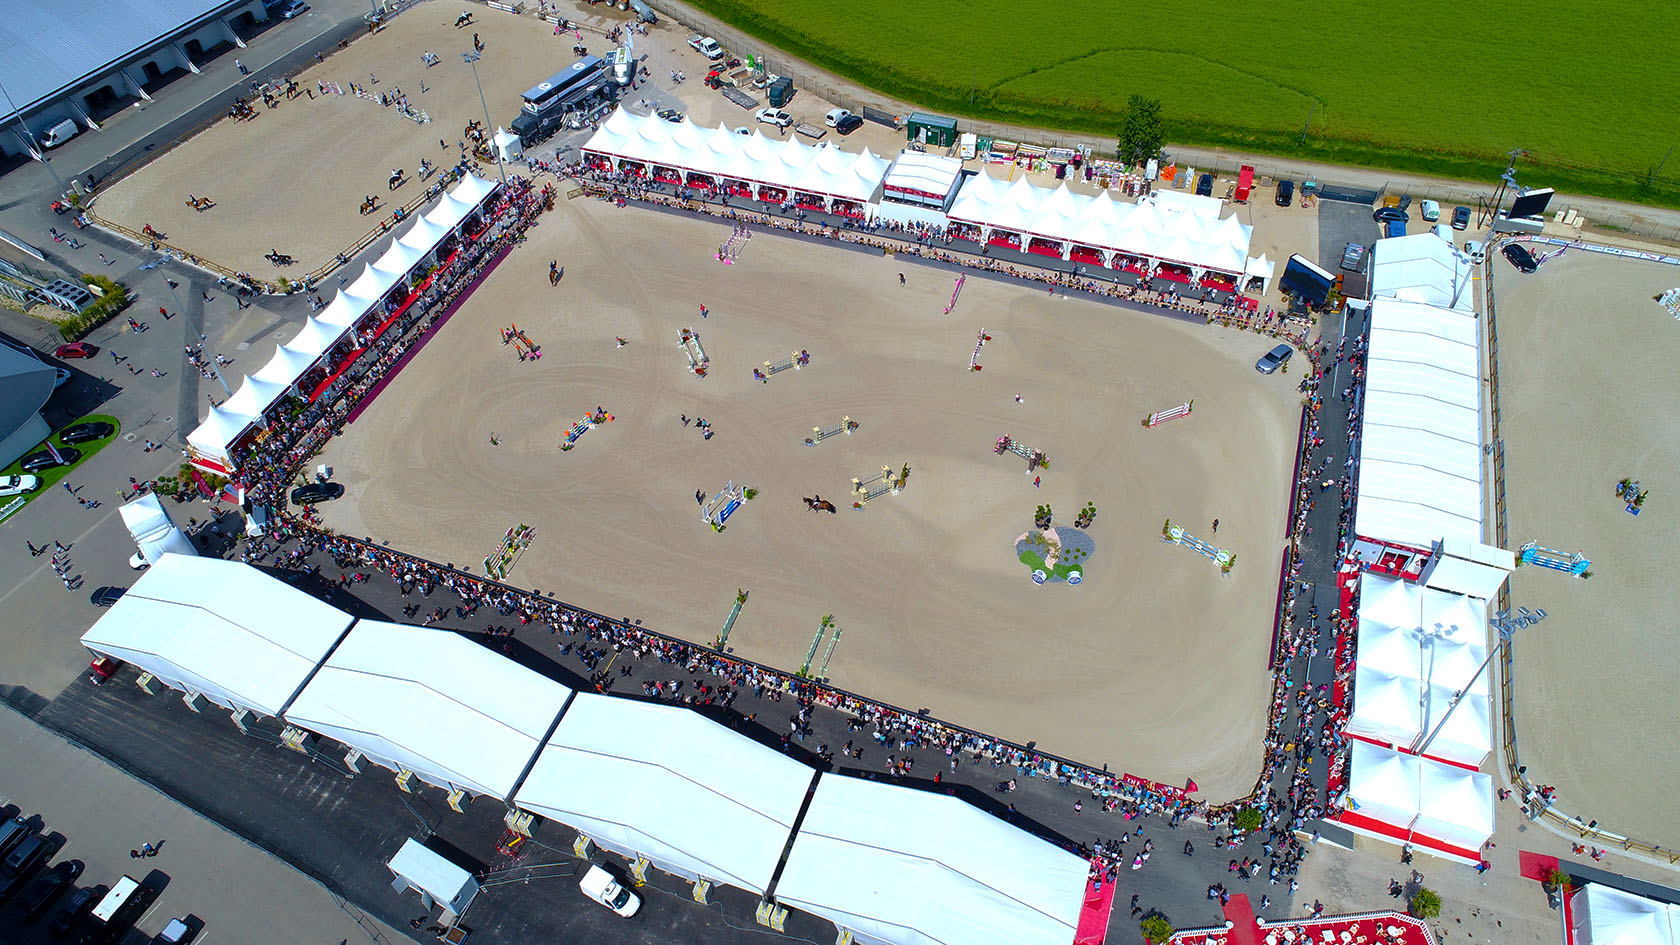 Jumping international de Bourg-en-Bresse